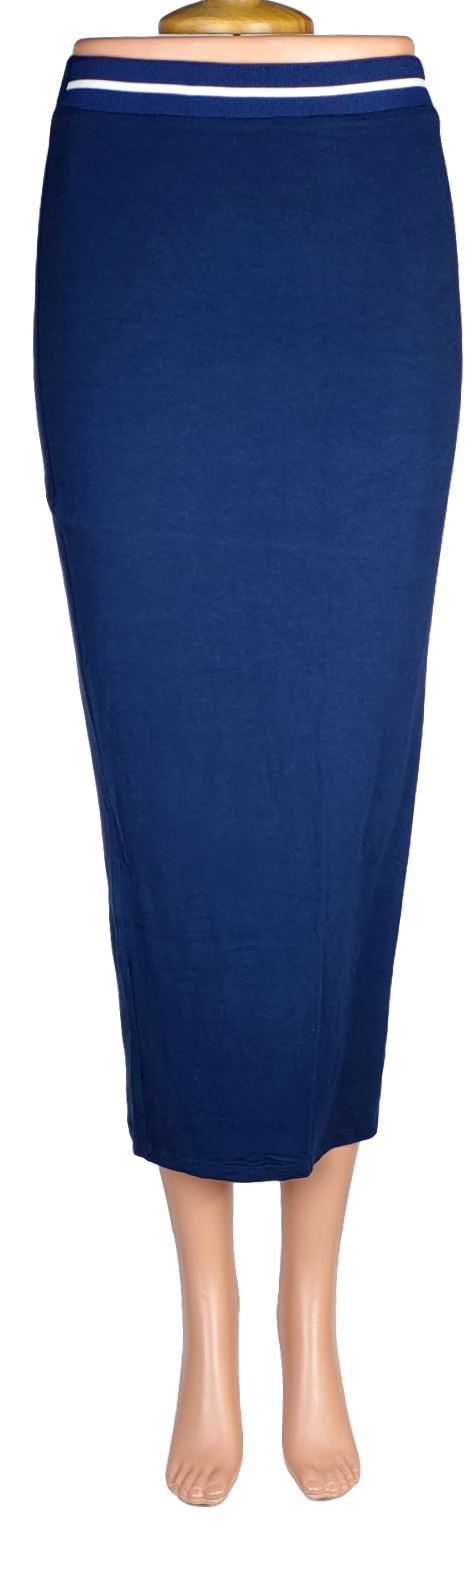 Jupe Dorothy Perkins -Taille 34